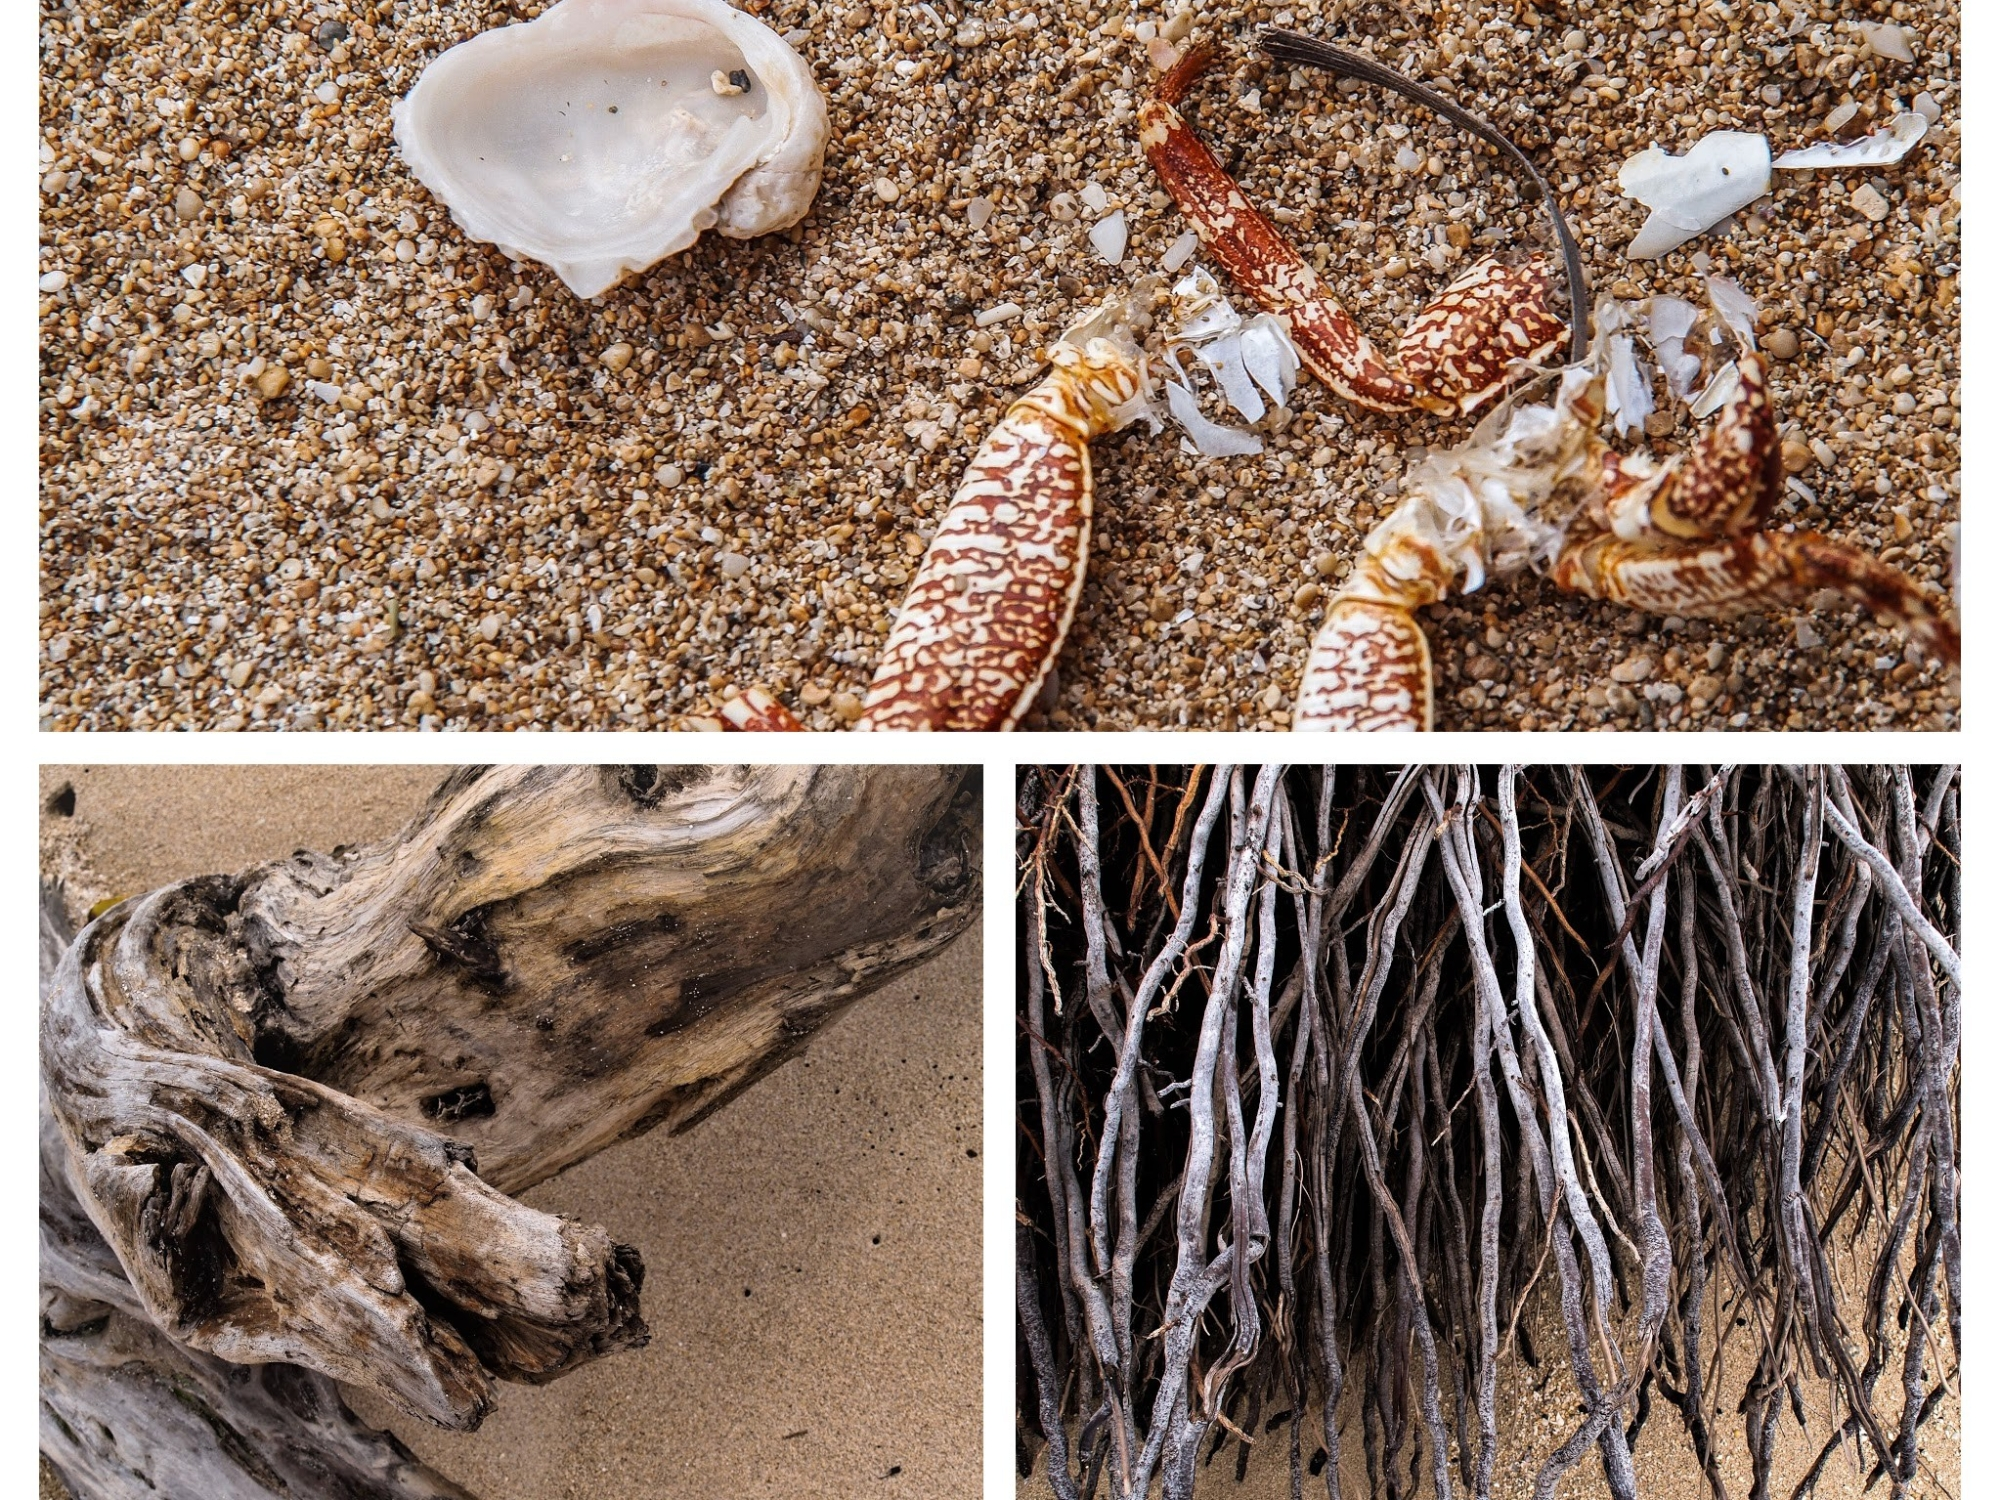 death at the beach, with roots, driftwood, crab legs and shell, (c) lensmomentsns 2018